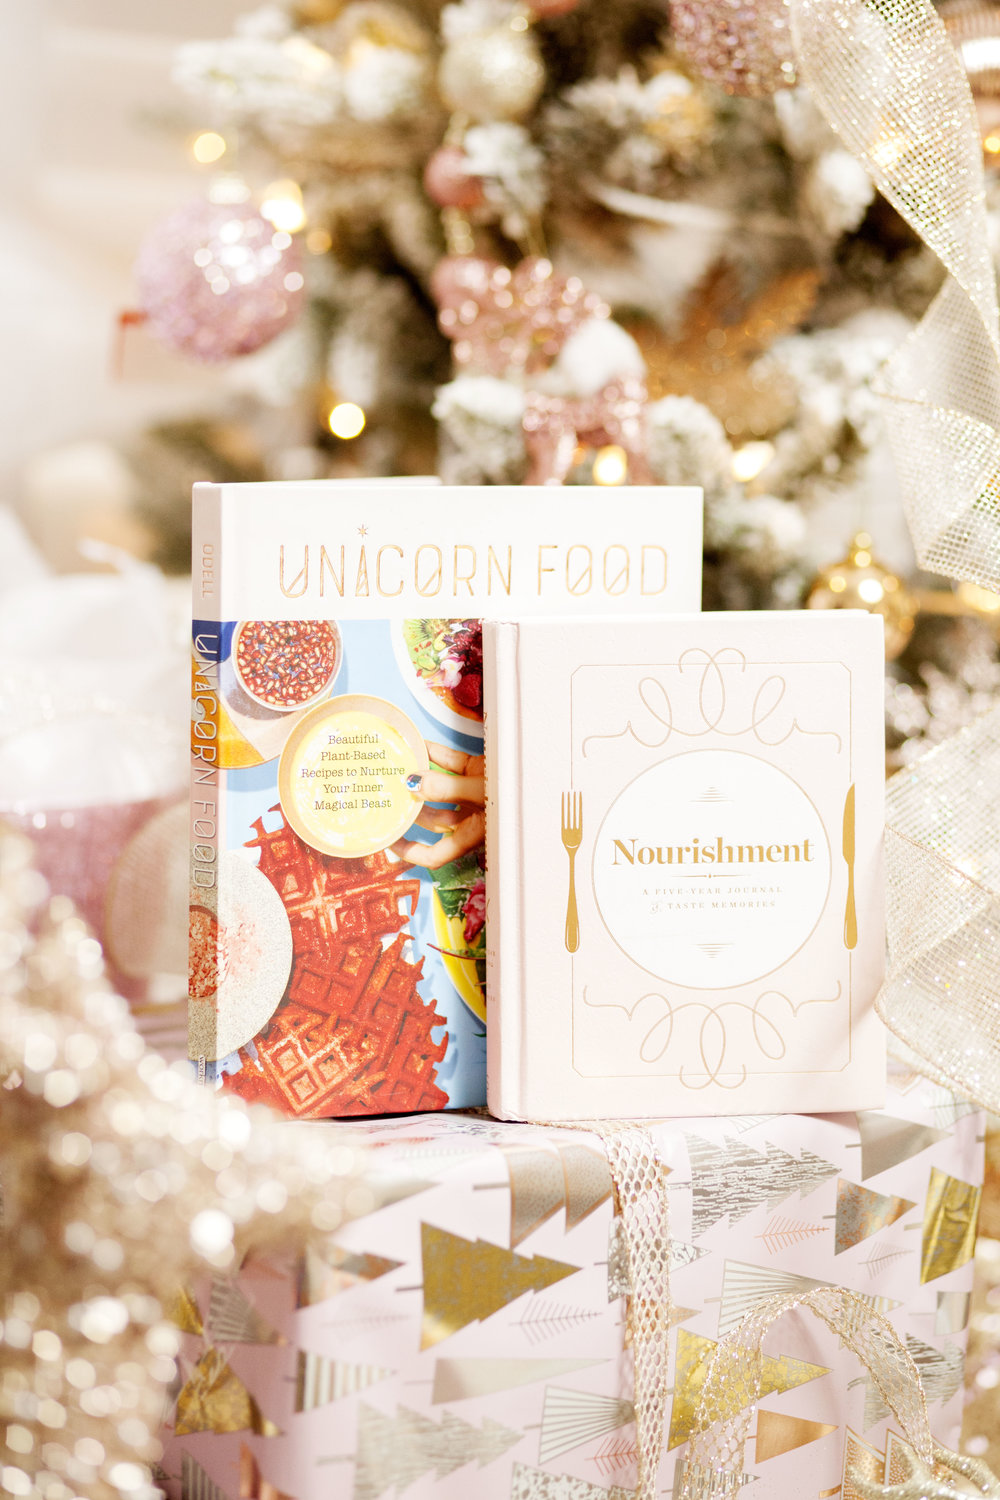 Unicorn Food - Nourishment Books - The Gilded Bellini Holiday Gift Guide